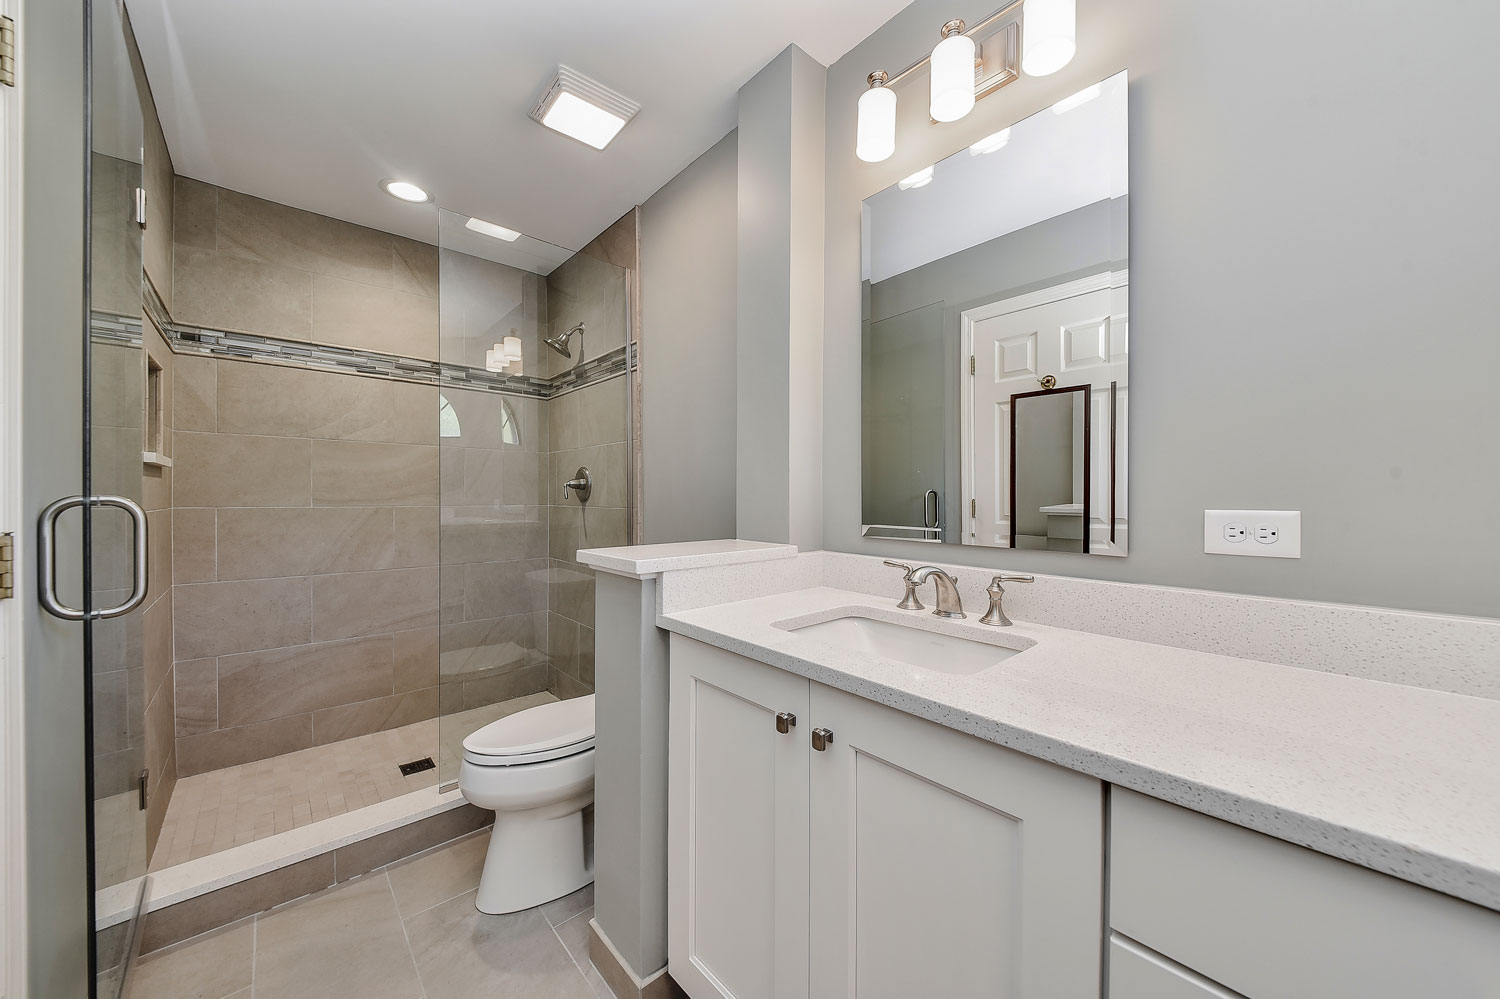 Charles & Cindy's Master Bathroom Remodel Pictures | Home ...